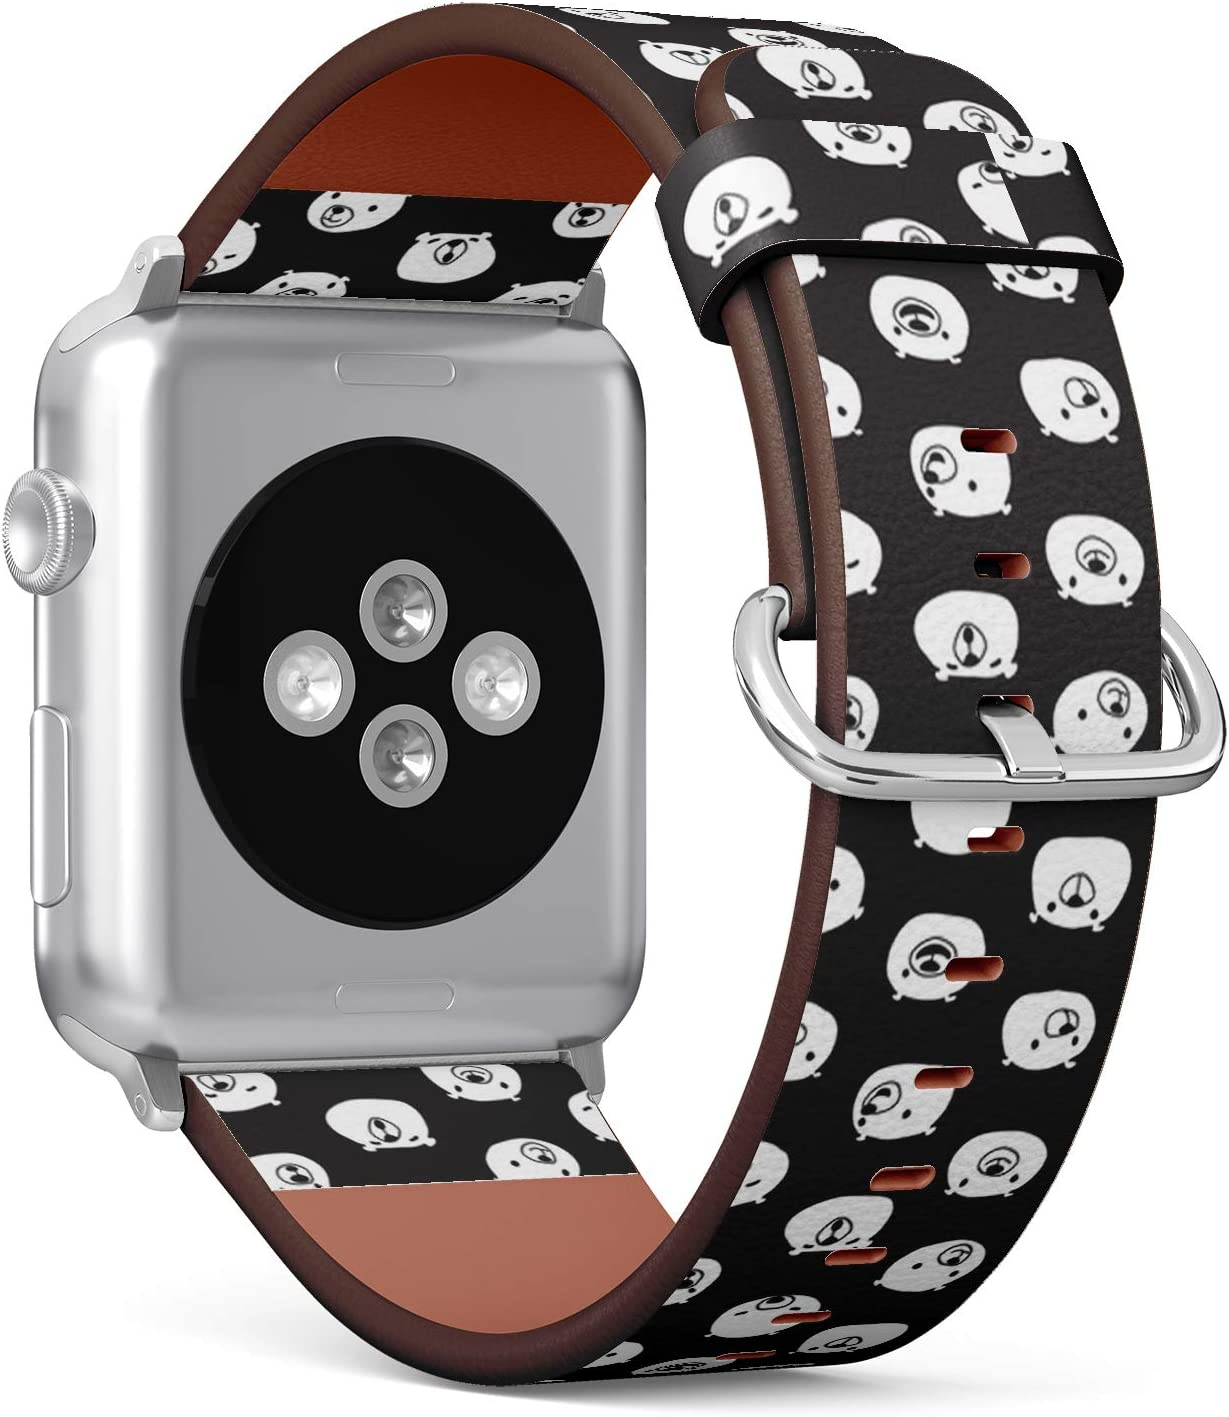 Compatible with Apple Watch Series 6/5/4/3/2/1 (Big Version 42/44 mm) Leather Wristband Bracelet Replacement Accessory Band + Adapters - Bear Face Teddy Polar